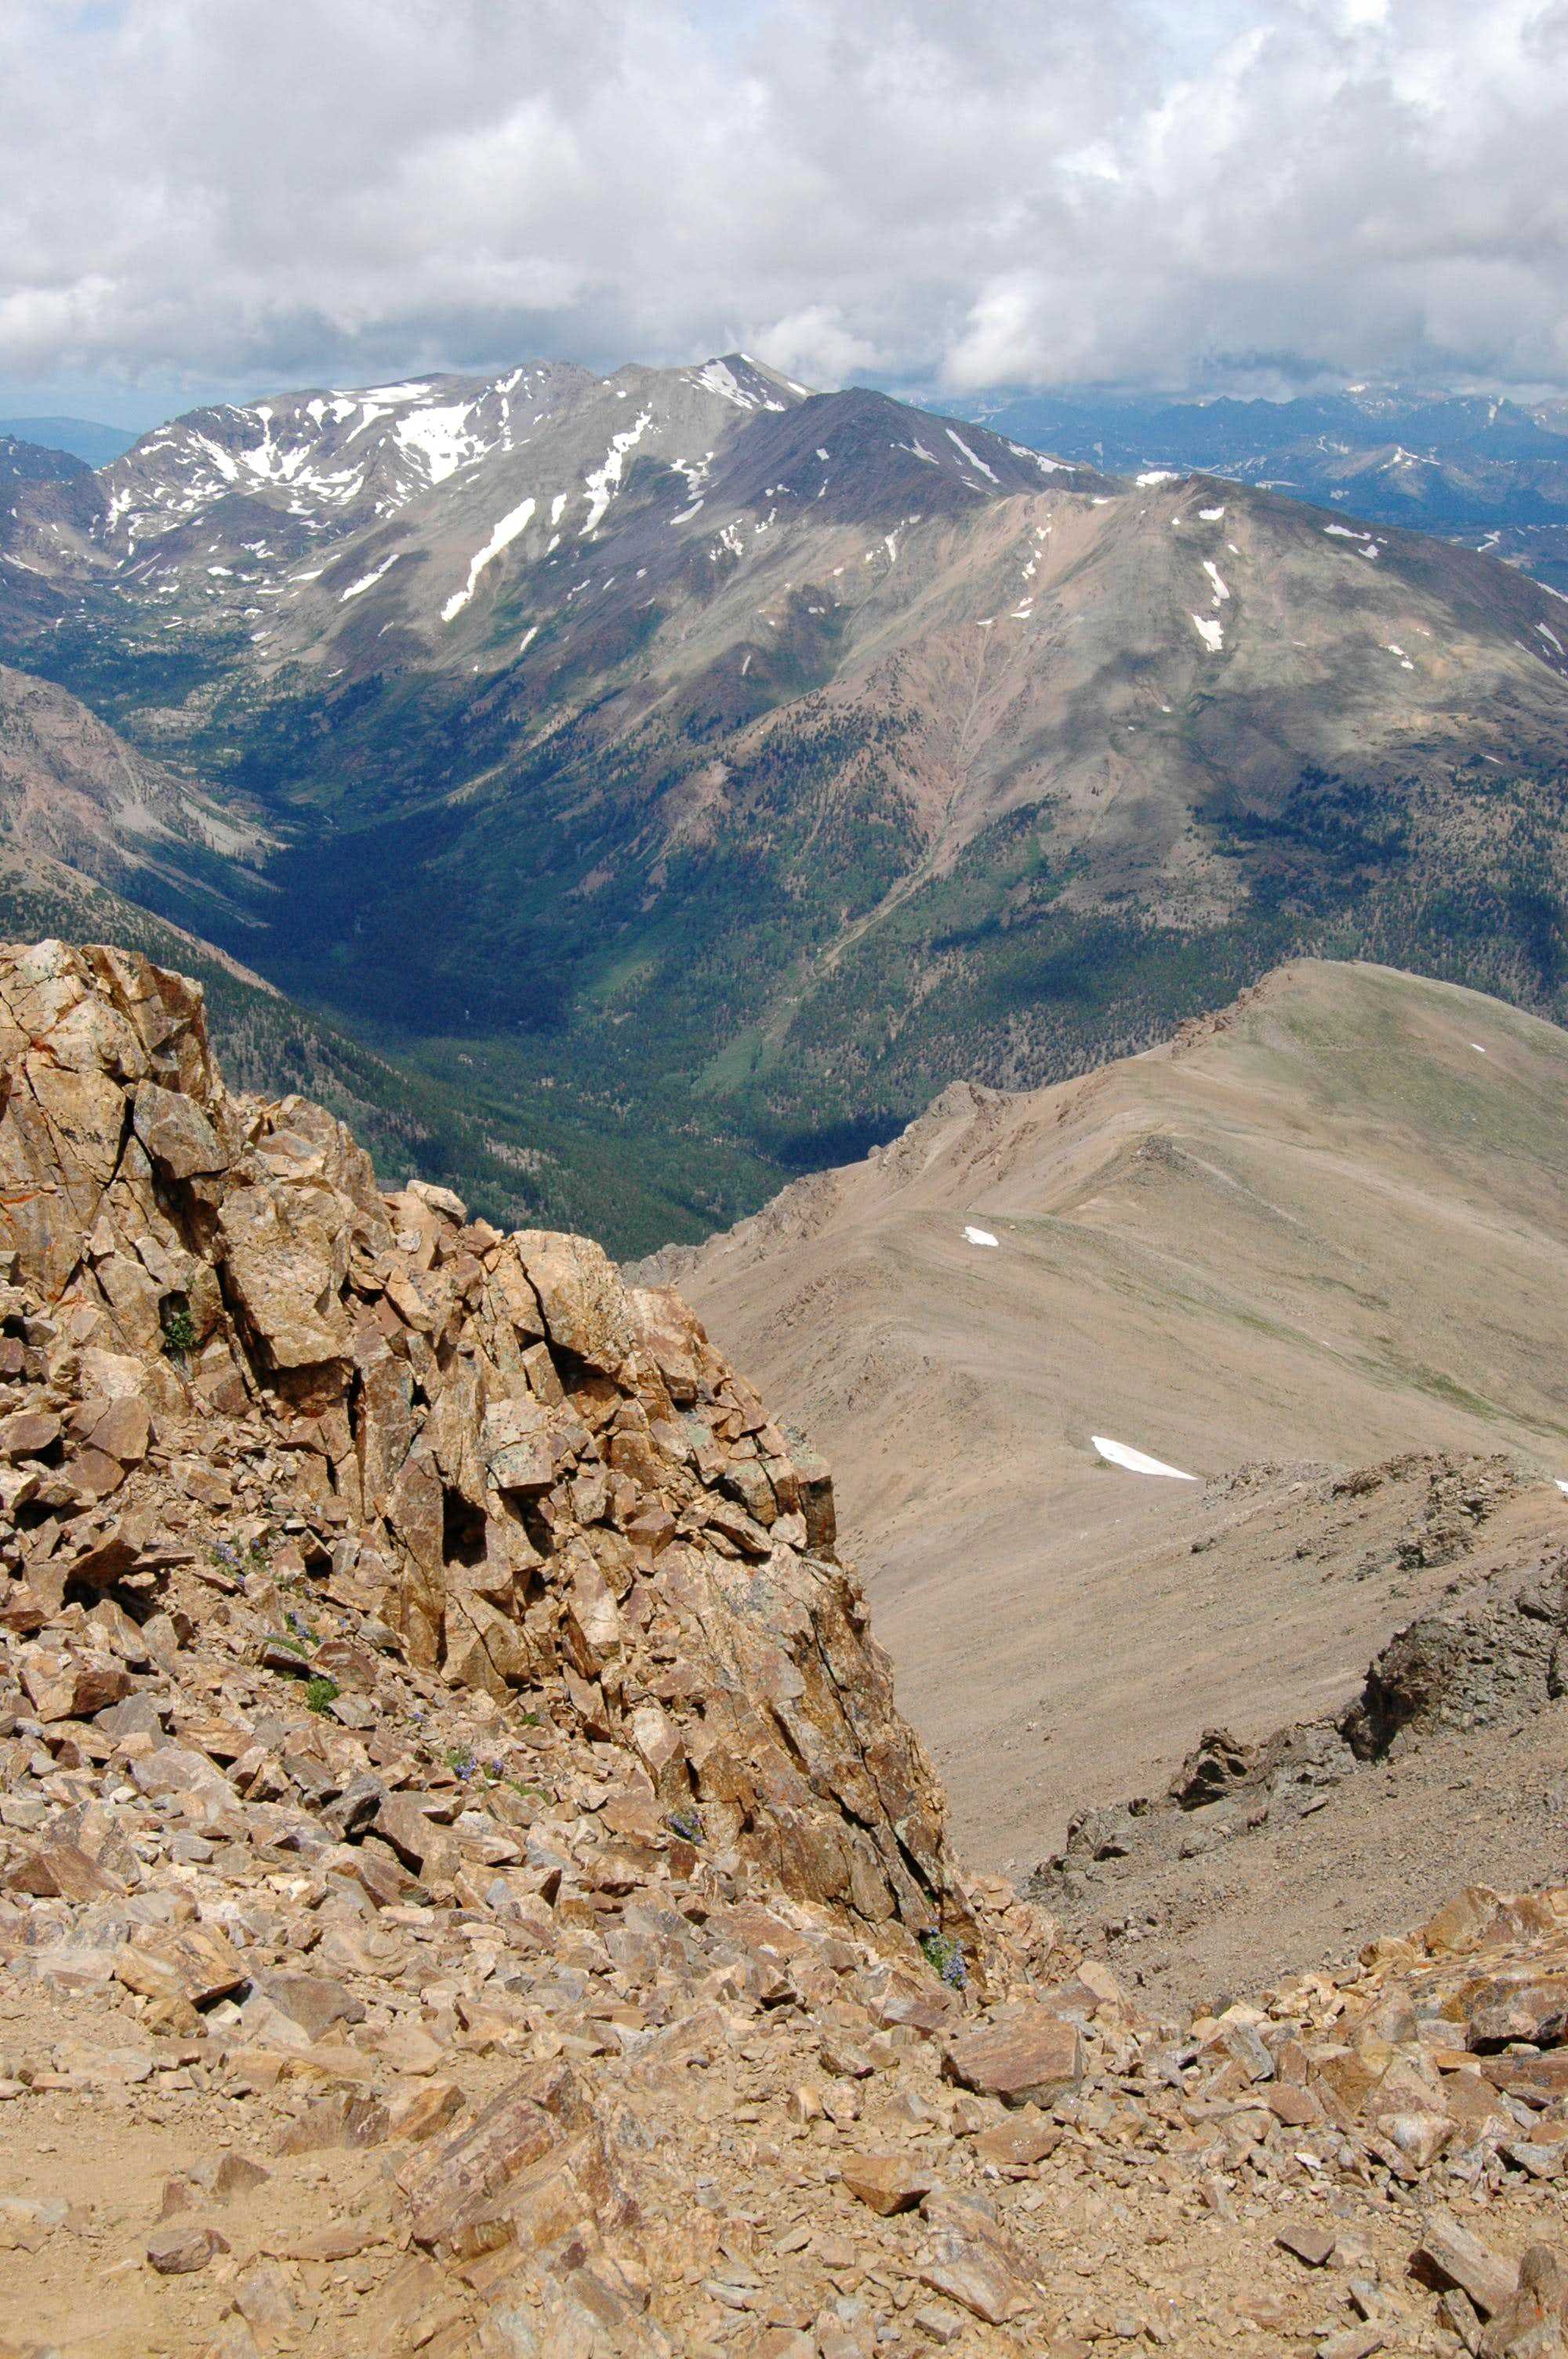 Seven Steps And Three Breathes: Our Oddesey To The Top of the Rockies